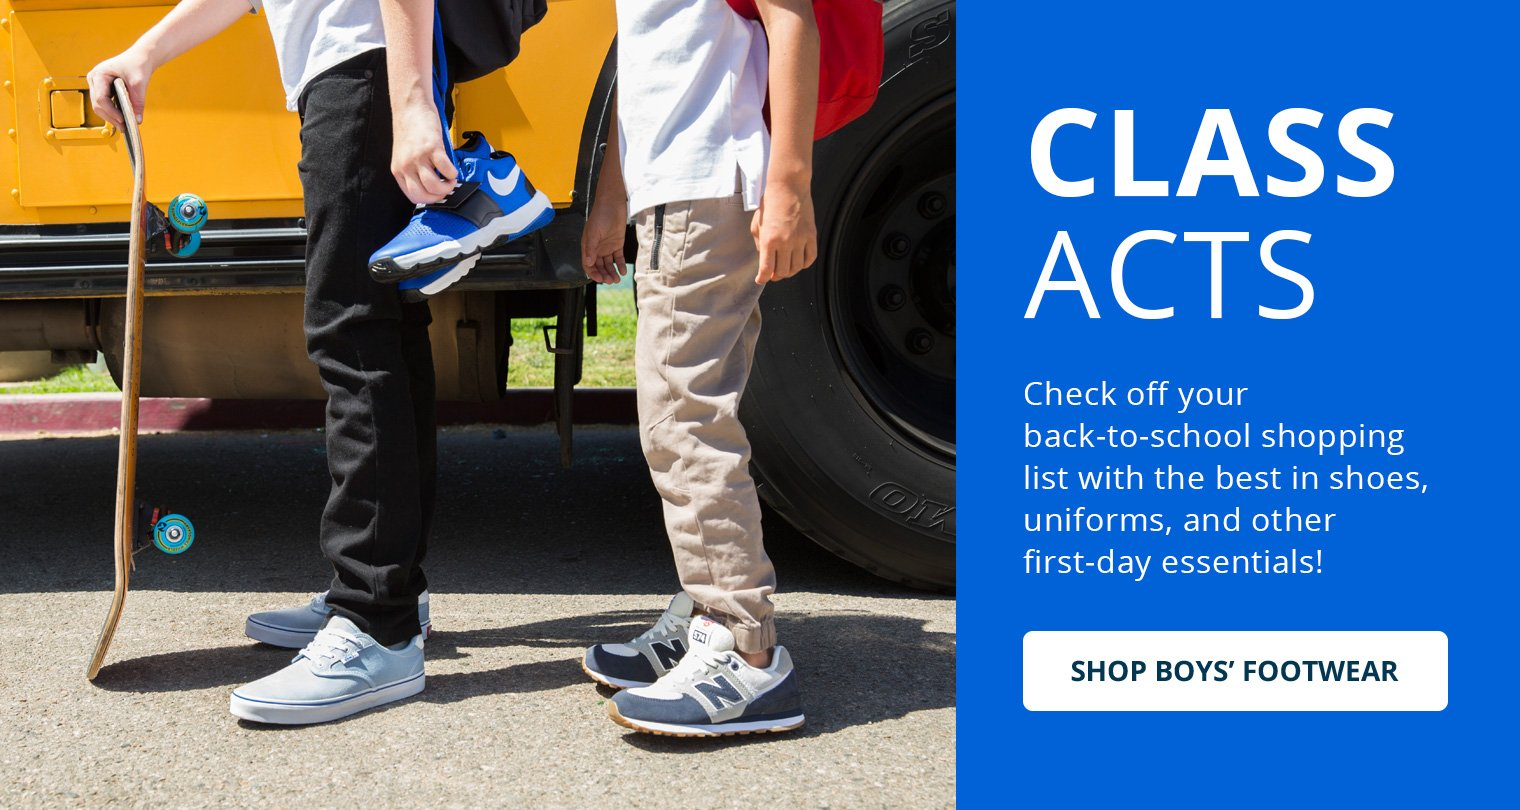 image of boys shoes standing on a bus step